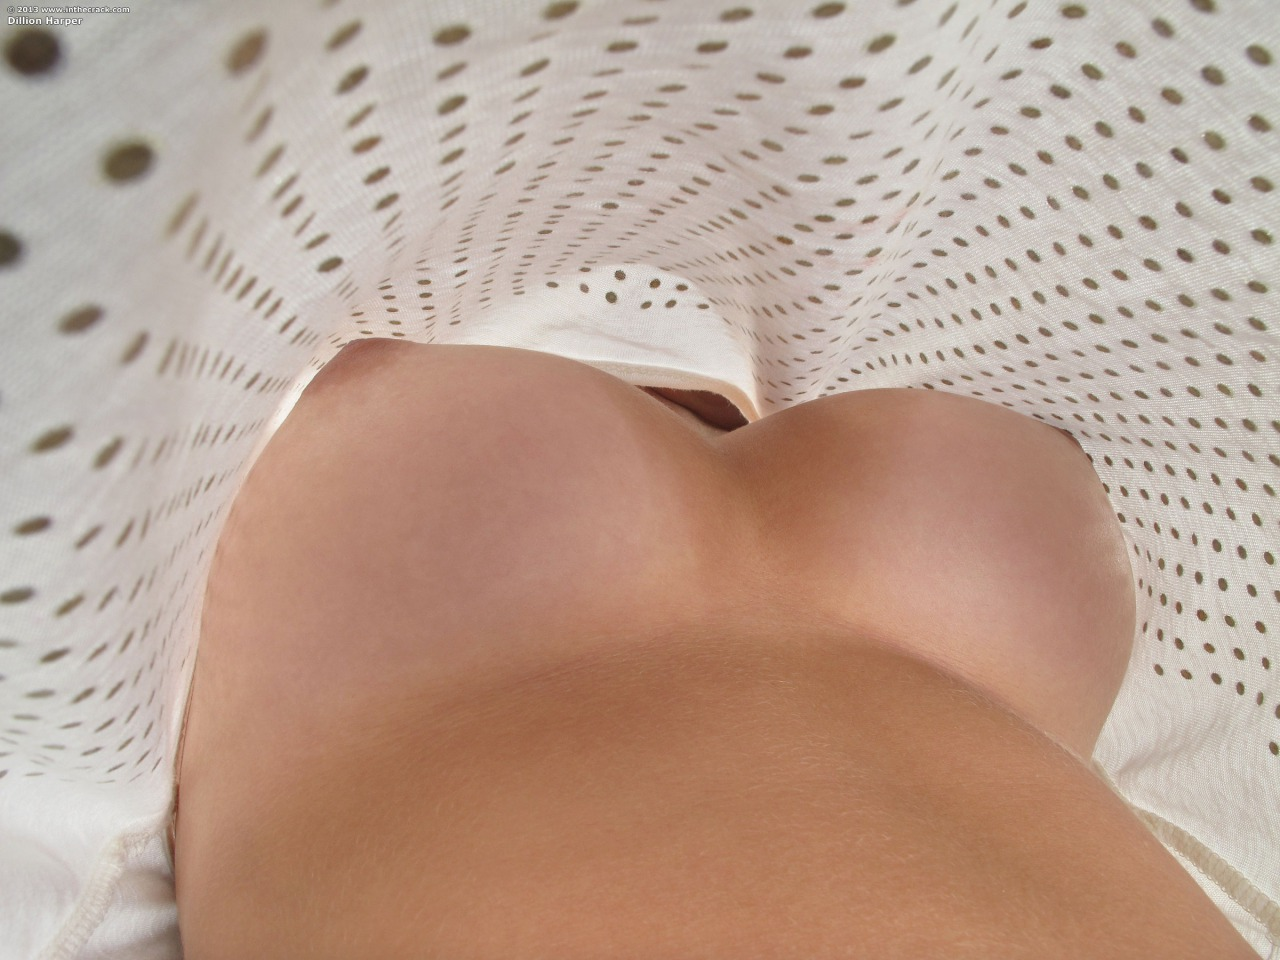 plumper sex tube videos free chubby black shemale porn Adorable, Amazing, Aureola, Awesome, Beautiful, Belly, Bigboobs, Bignaturals, Bignaturals, Bigtits, Bodacious, Boobs, Brafree, Breasts, Busty, Curves, Curvy, Cute, Dance, Erotic, Eroticart, Flatstomach, Foxy, Gorgeous, Greatrack, Greatshot, Hot, Hotbabe, Hotbody, Hottie, Hourglass, Justperfect, Lovely, Mycarr, Nicepair, Nicerack, Niceshot, Nipples, Nobra, Nobra, Nudeart, Opportunity, Perfect, Perfecttits, Photography, Photography, Picture, Pinknipples, Roundtits, Seduction, Seductive, Sensual, Sexy, Sexyfav, Sheer, Smclmnc, Stunning, Surprise, Sweet, Teen, Tits, Tits, Topless, Undershirt, Waist, Wow, Youg